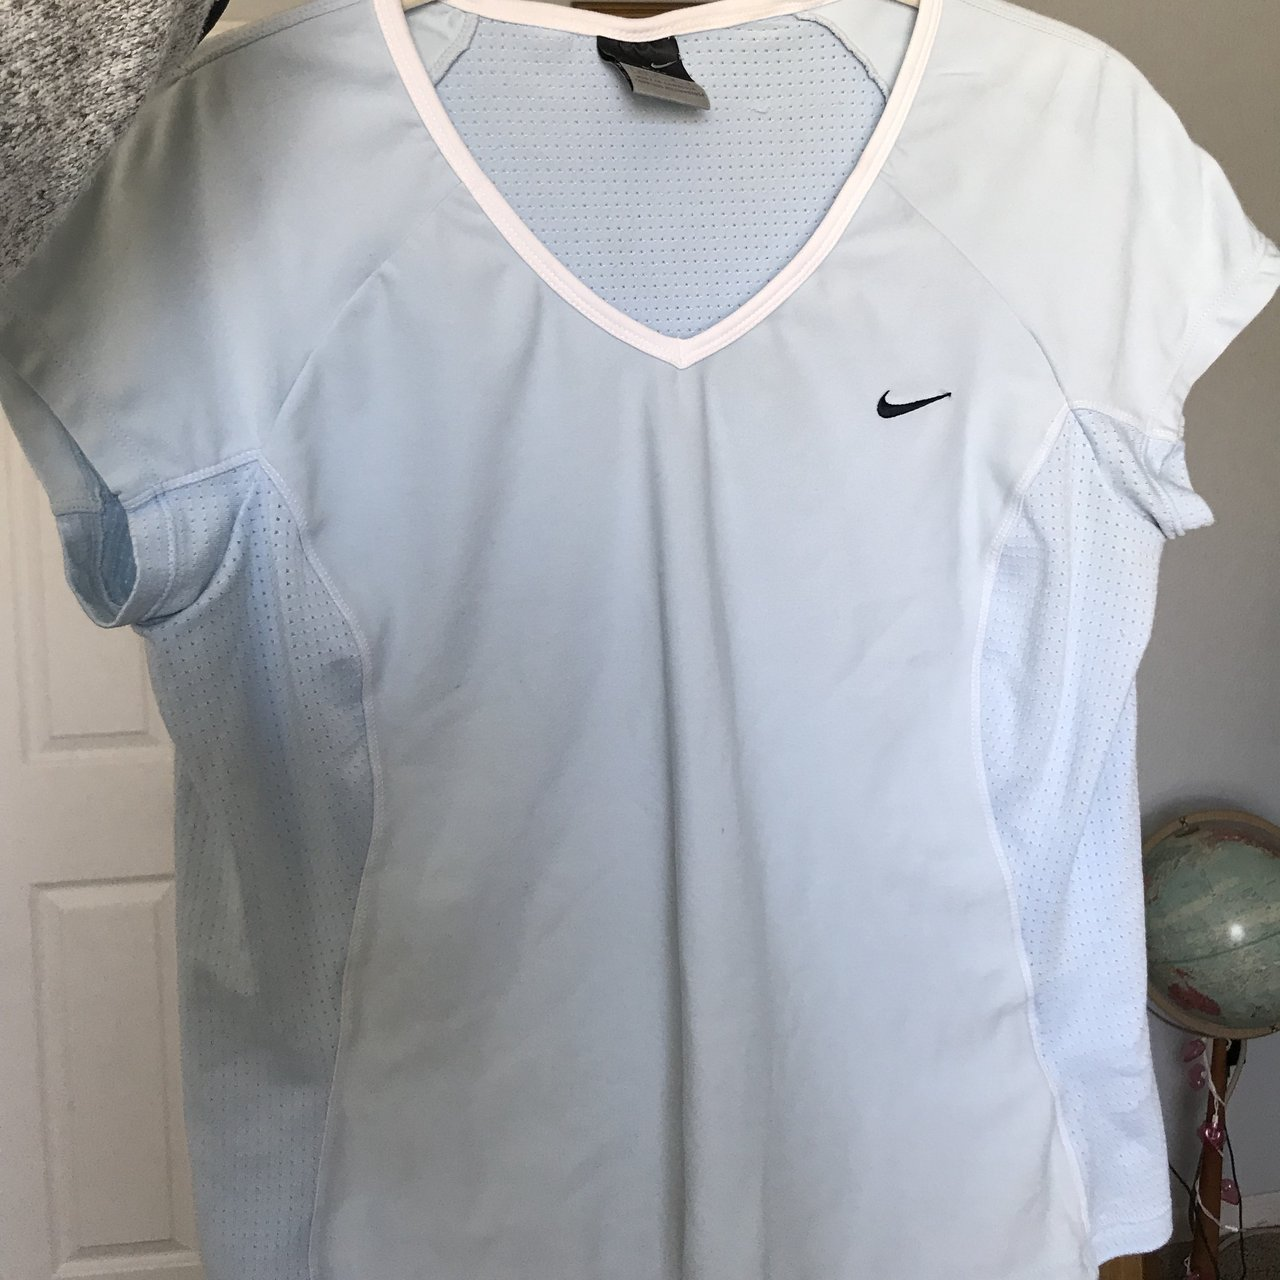 0b1a97424b115 Nike dri-fit t-back tank top size small - could fit up to a - Depop